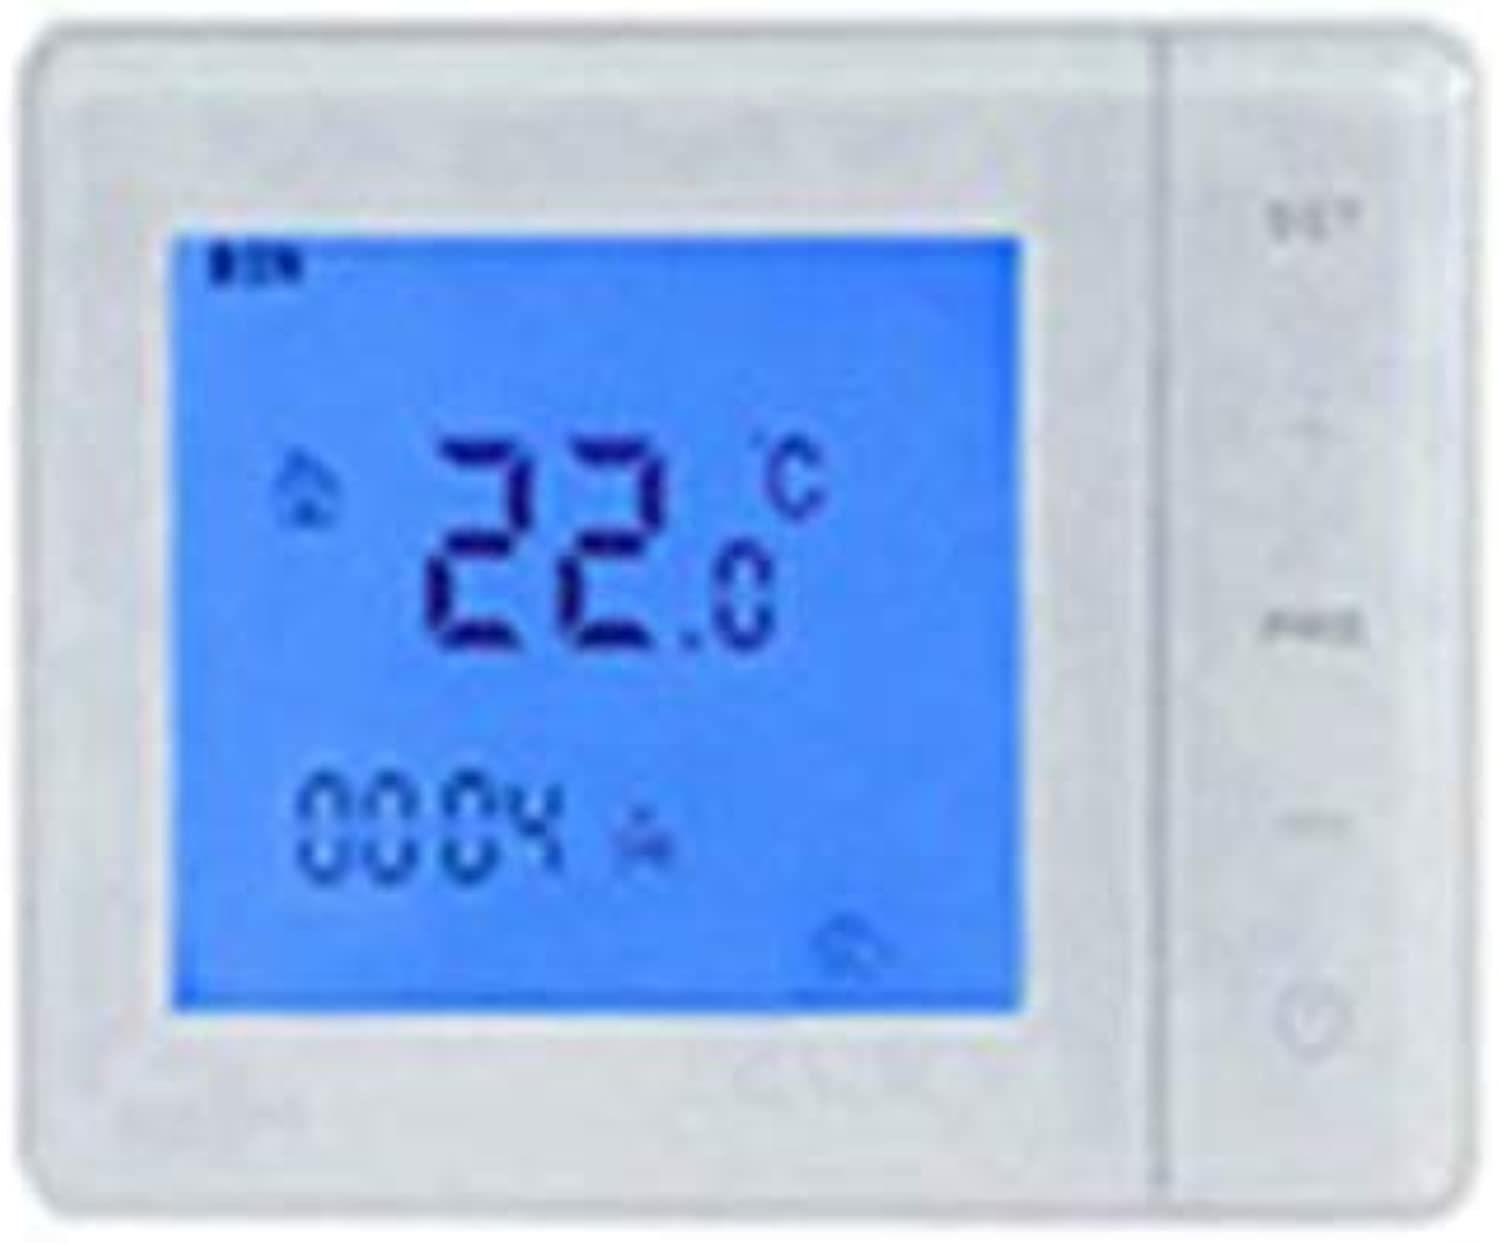 HY01RF Wireless Gas Boiler Thermostat RF Control Heating Control 100-240V White